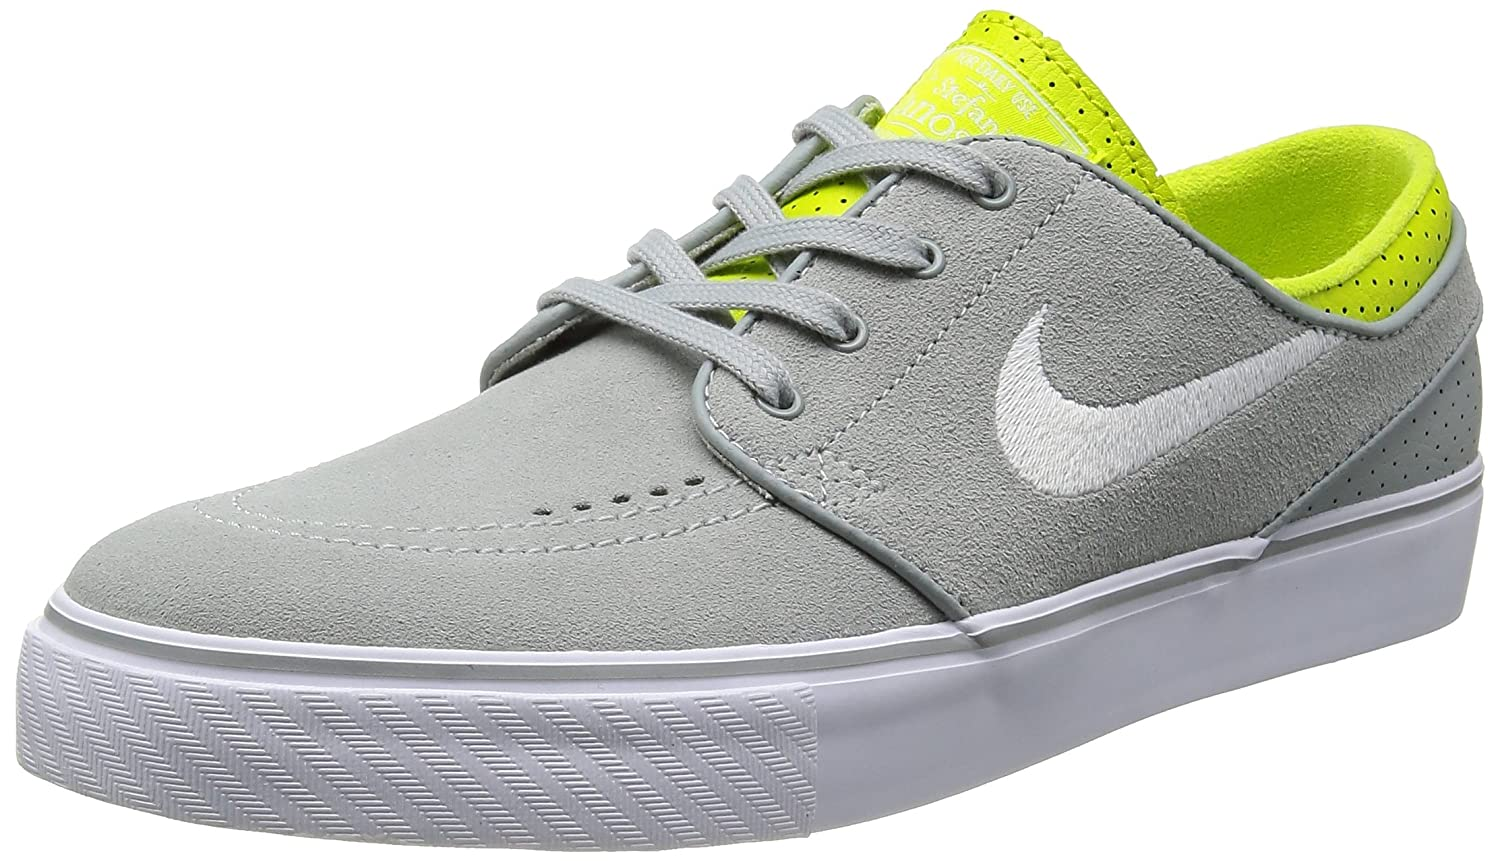 Images for nike SB zoom stefan janoski mens skate trainers 333824 025  sneakers shoes (uk 8.5 us 9.5 eu 43, base grey white venom green)